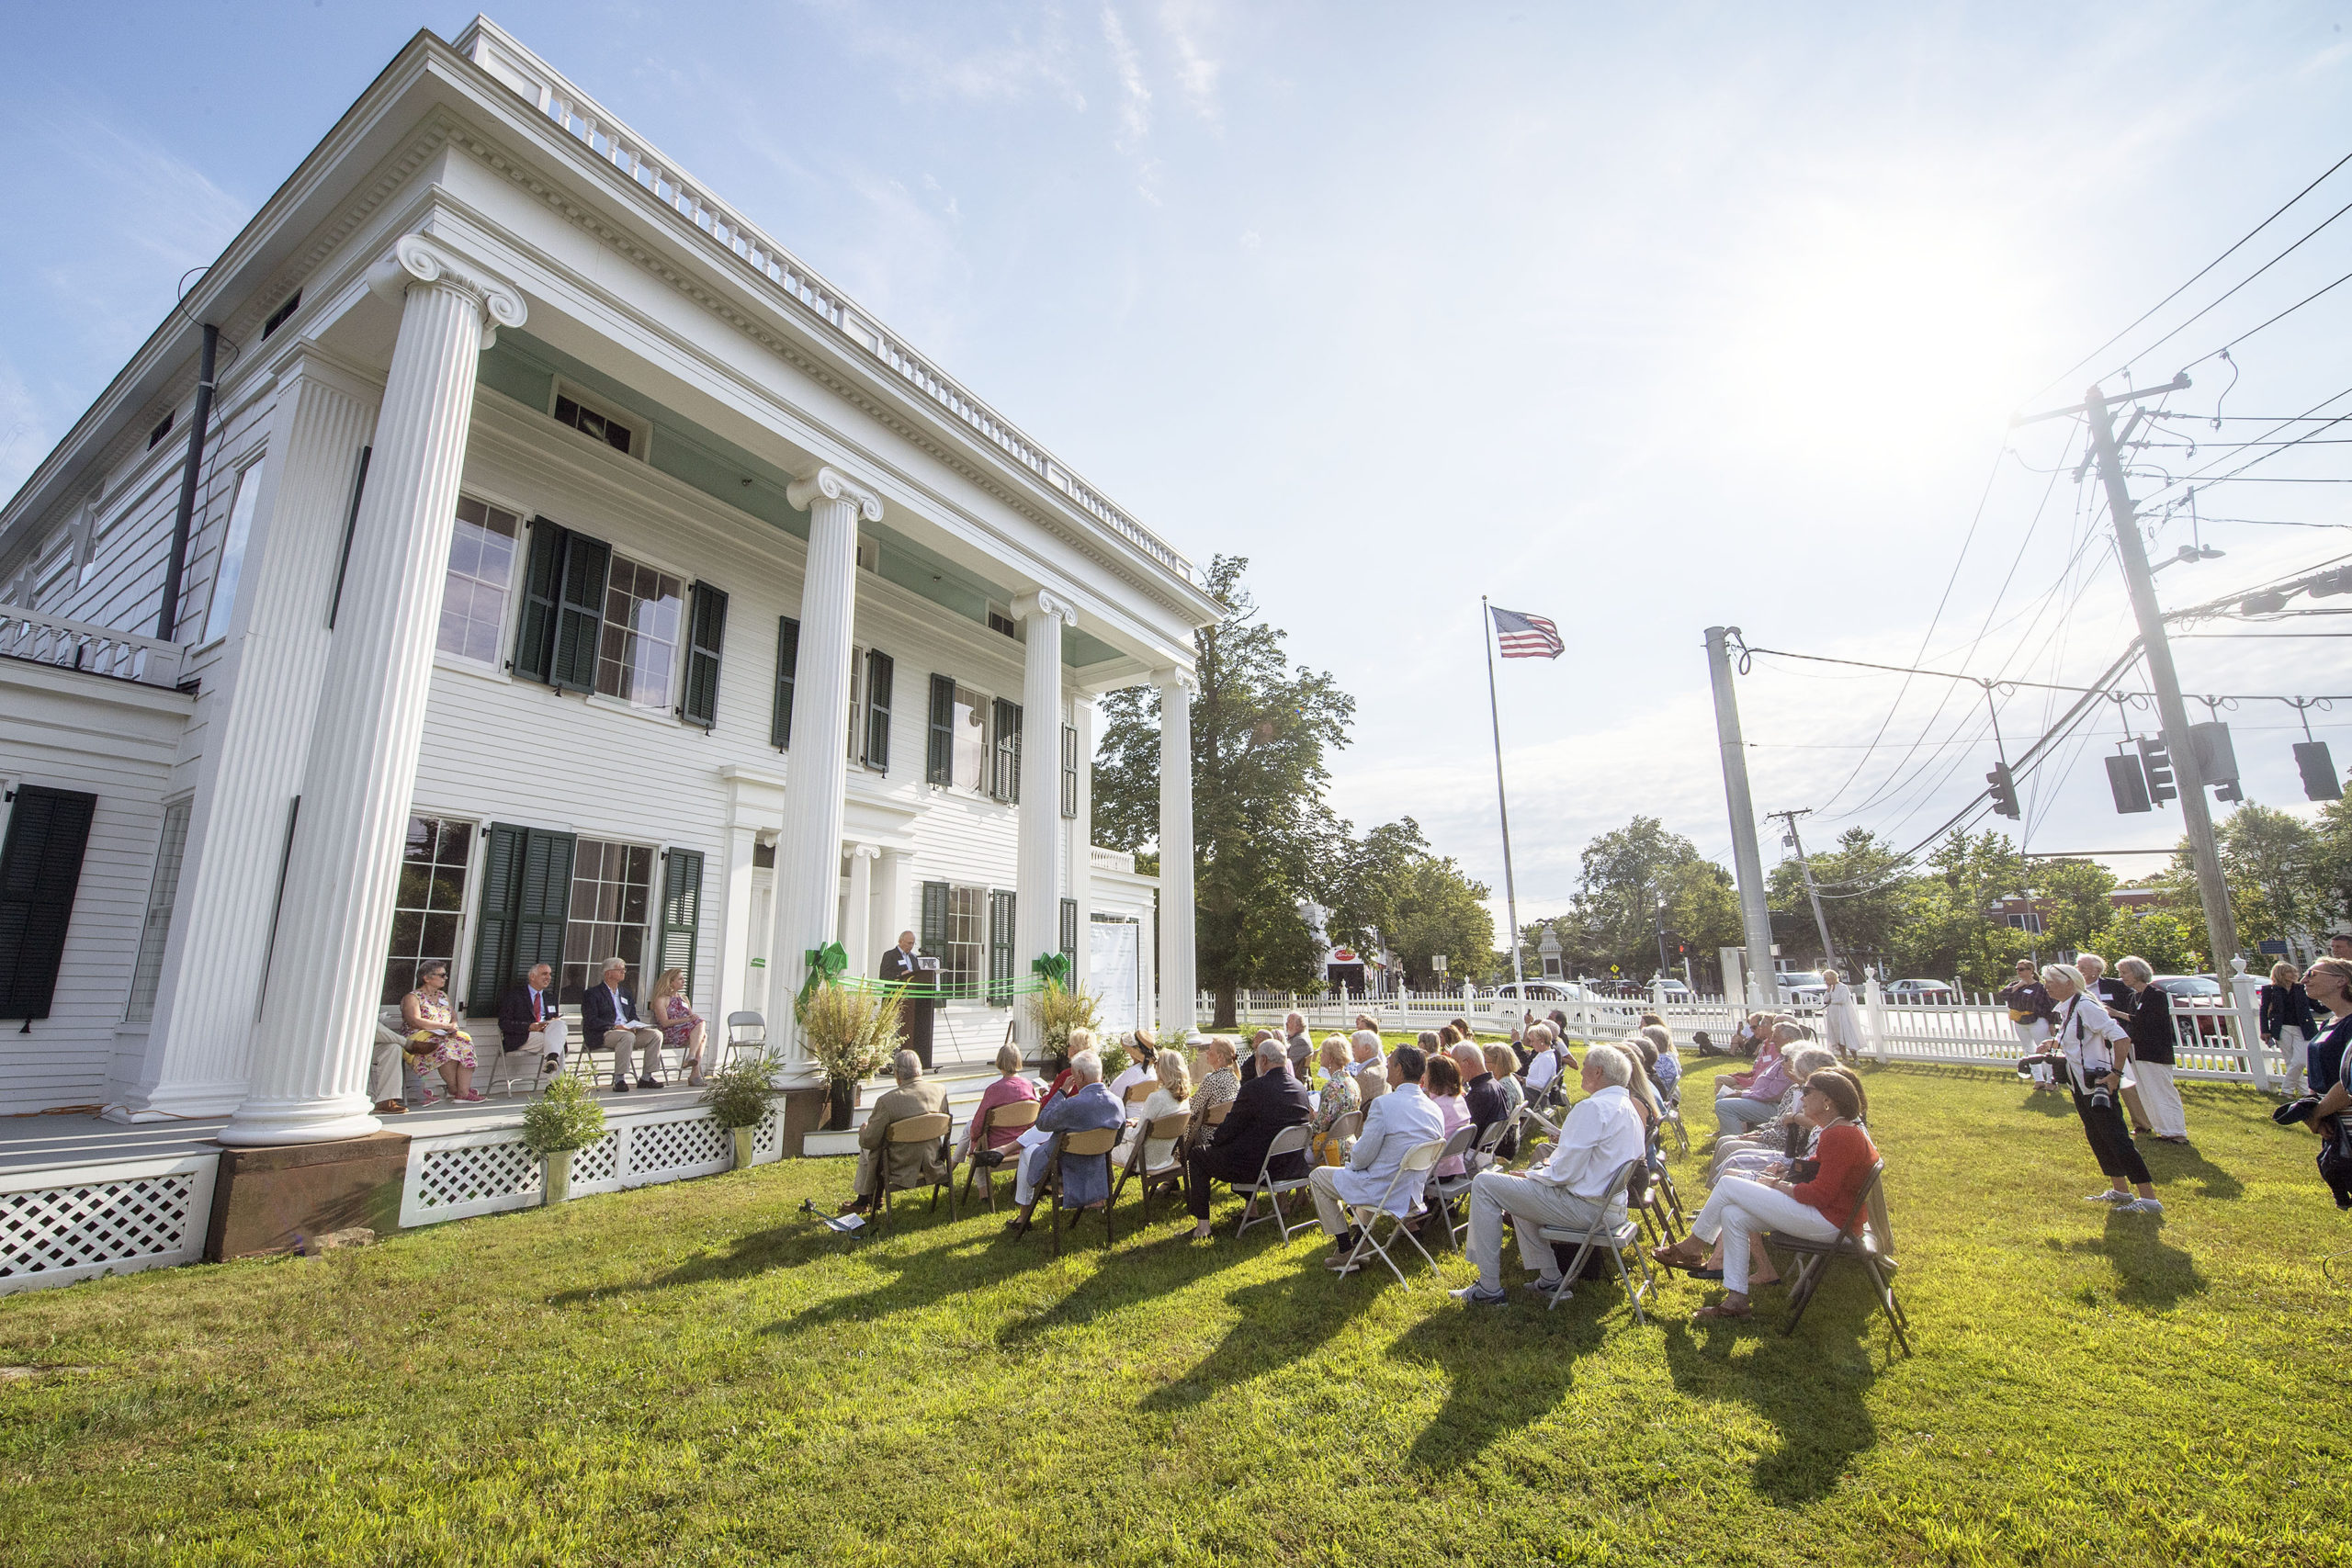 A ribbon-cutting ceremony was held to inaugurate the new, completely refurbished Nathaniel Rogers House at the corner of Ocean Road and Montauk Highway on Sunday.   MICHAEL HELLER